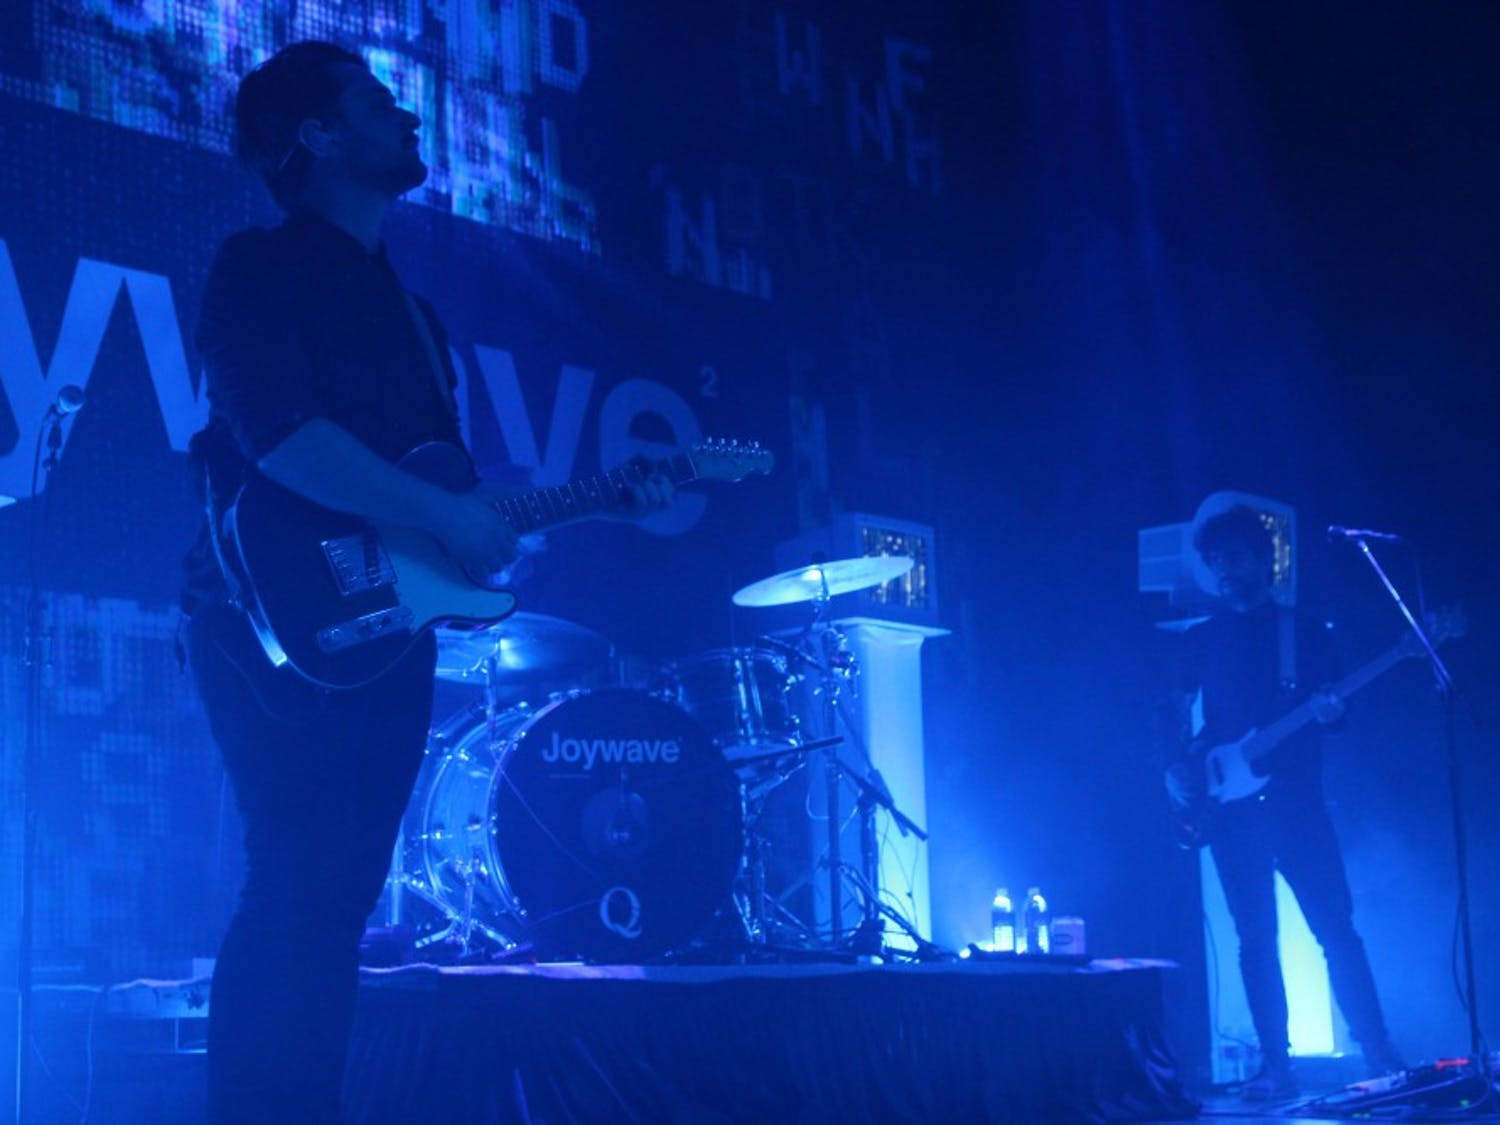 Indie rock band Joywave performed at Town Ballroom Wednesday night with interesting television props, high energy and entertaining openers.